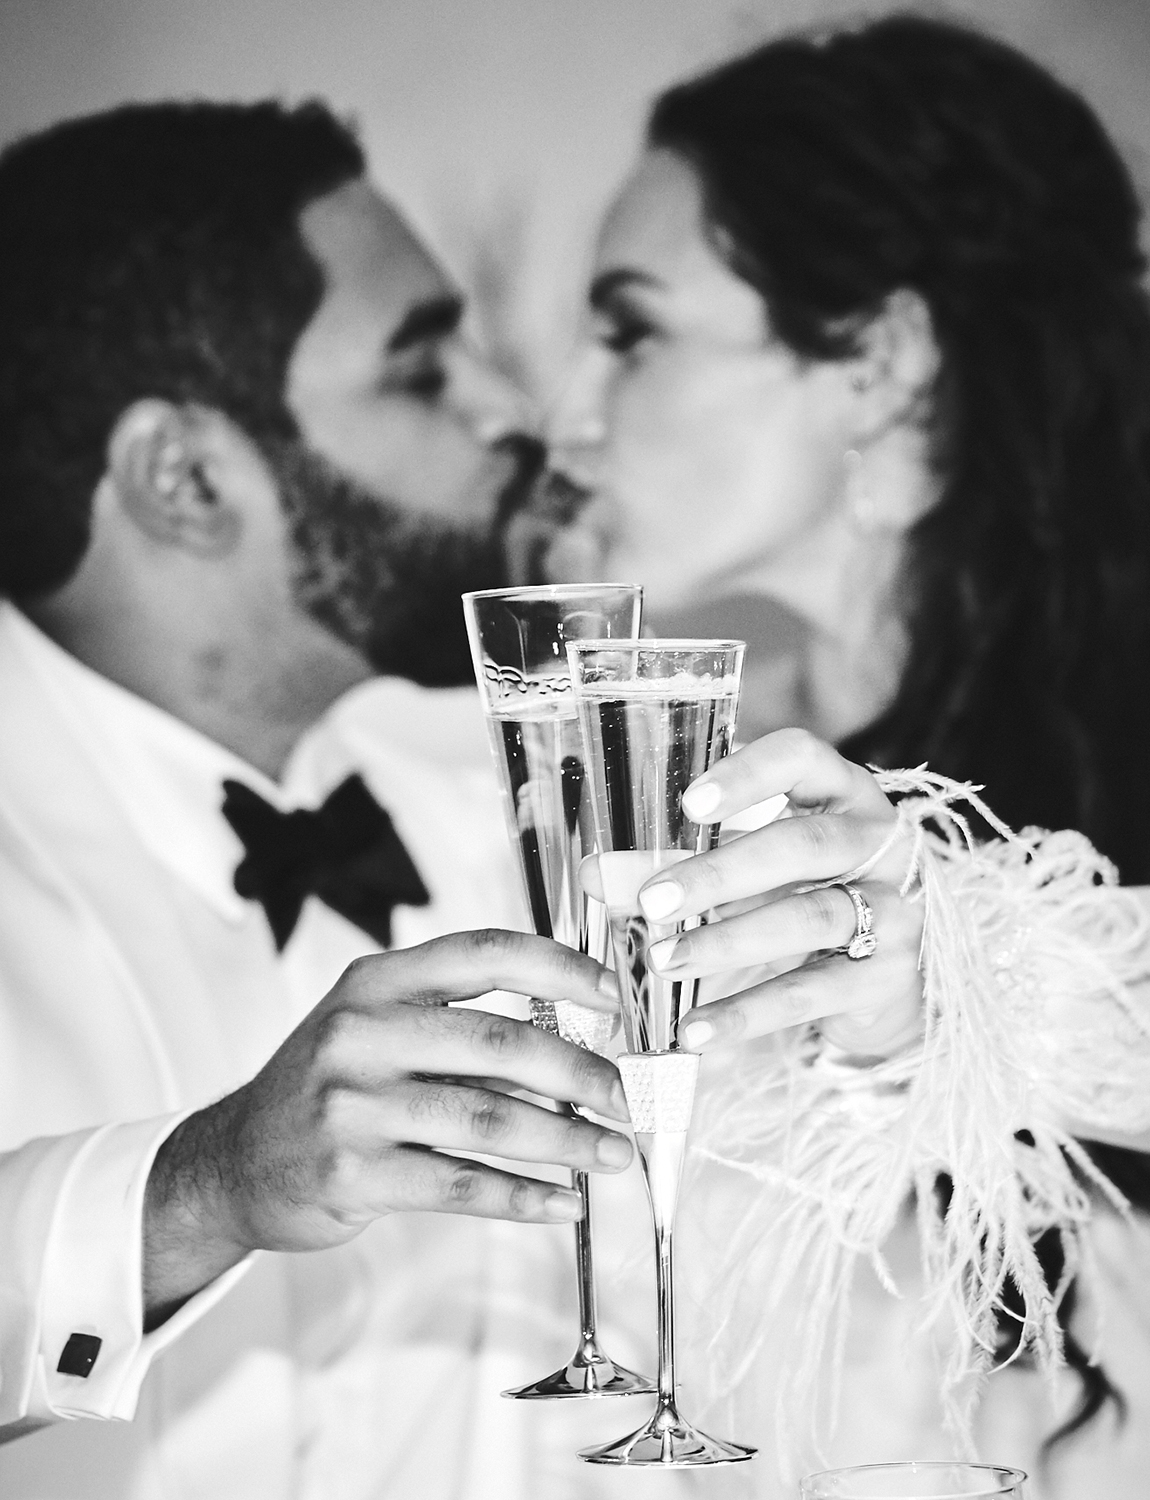 170930_WilliamValeWeddingPhotography_BrooklynWeddingPhotographer_By_BriJohnsonWeddings_0153.jpg